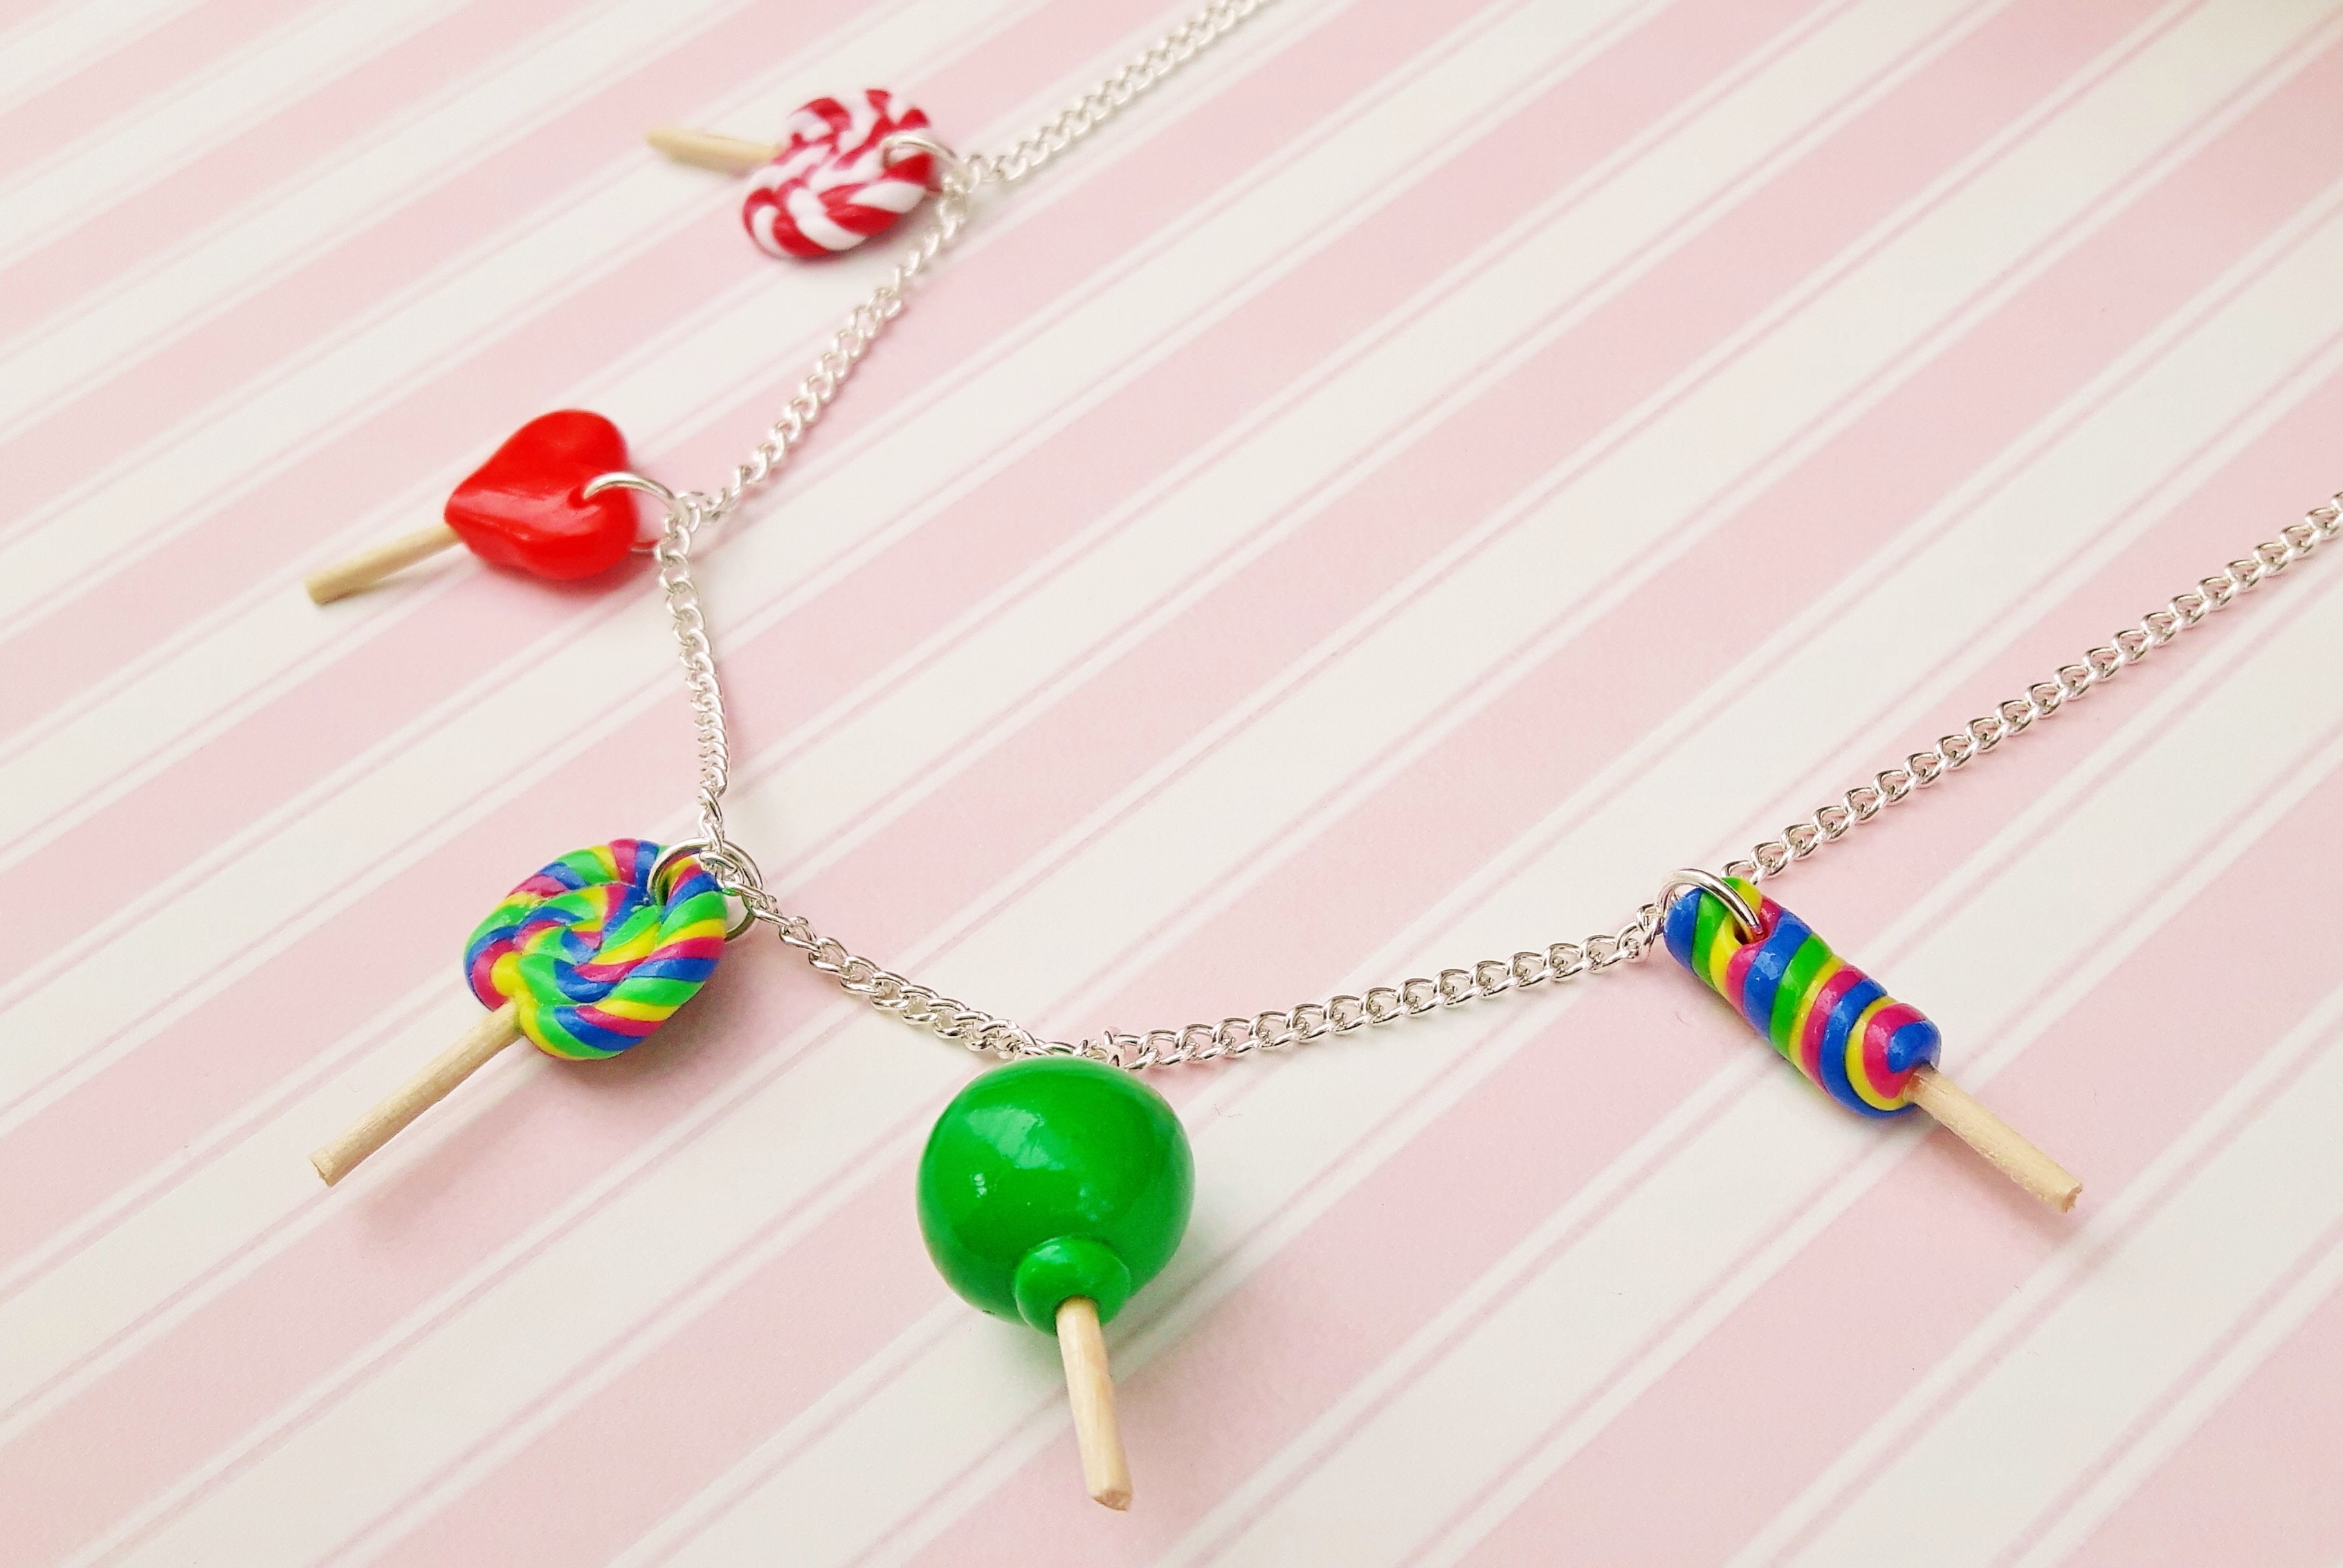 Handmade, cute, sweet, candy, pick 'n' mix, novelty, kitsch, kawaii, jewellery, accessories, gifts, fashion, made from, Fimo, polymer clay, silver, plated, nickel free, in uk, lollipop, charm, necklace,